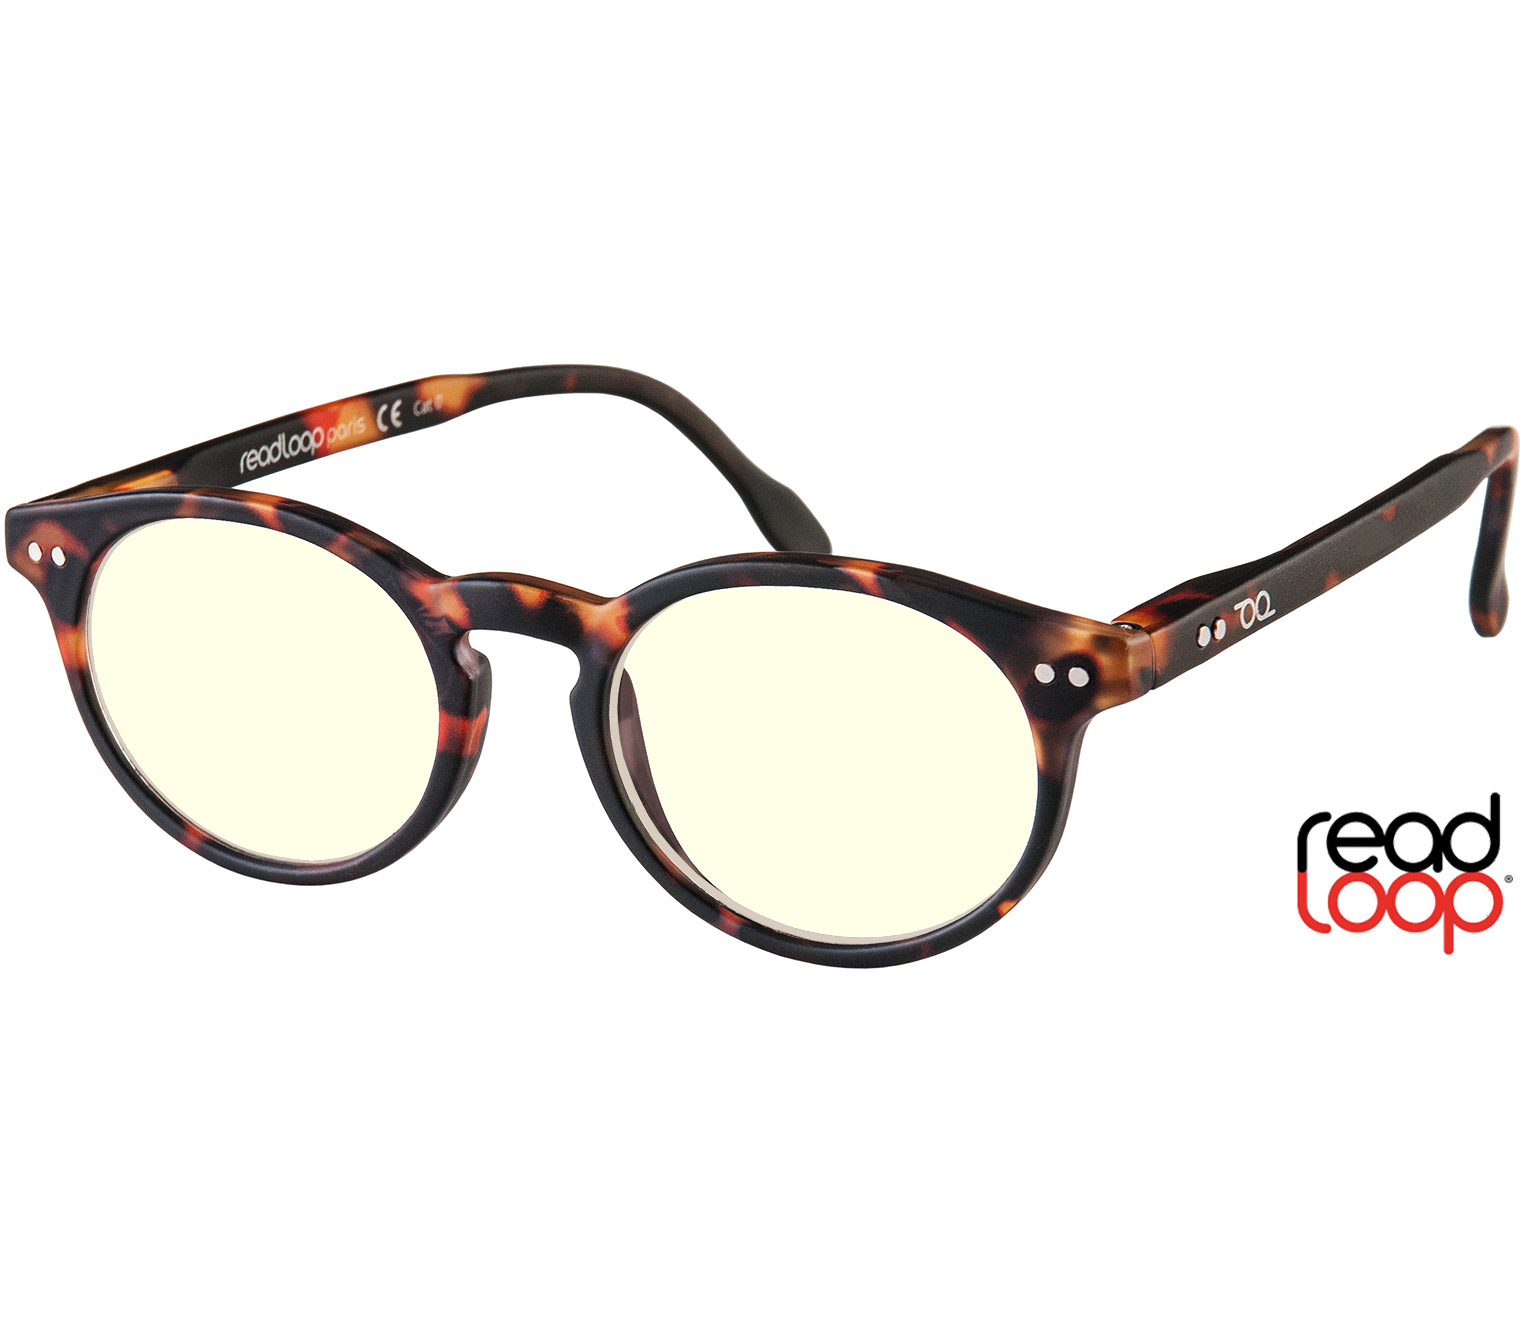 Main Image (Angle) - Logic (Tortoiseshell) Blue Light Glasses Reading Glasses